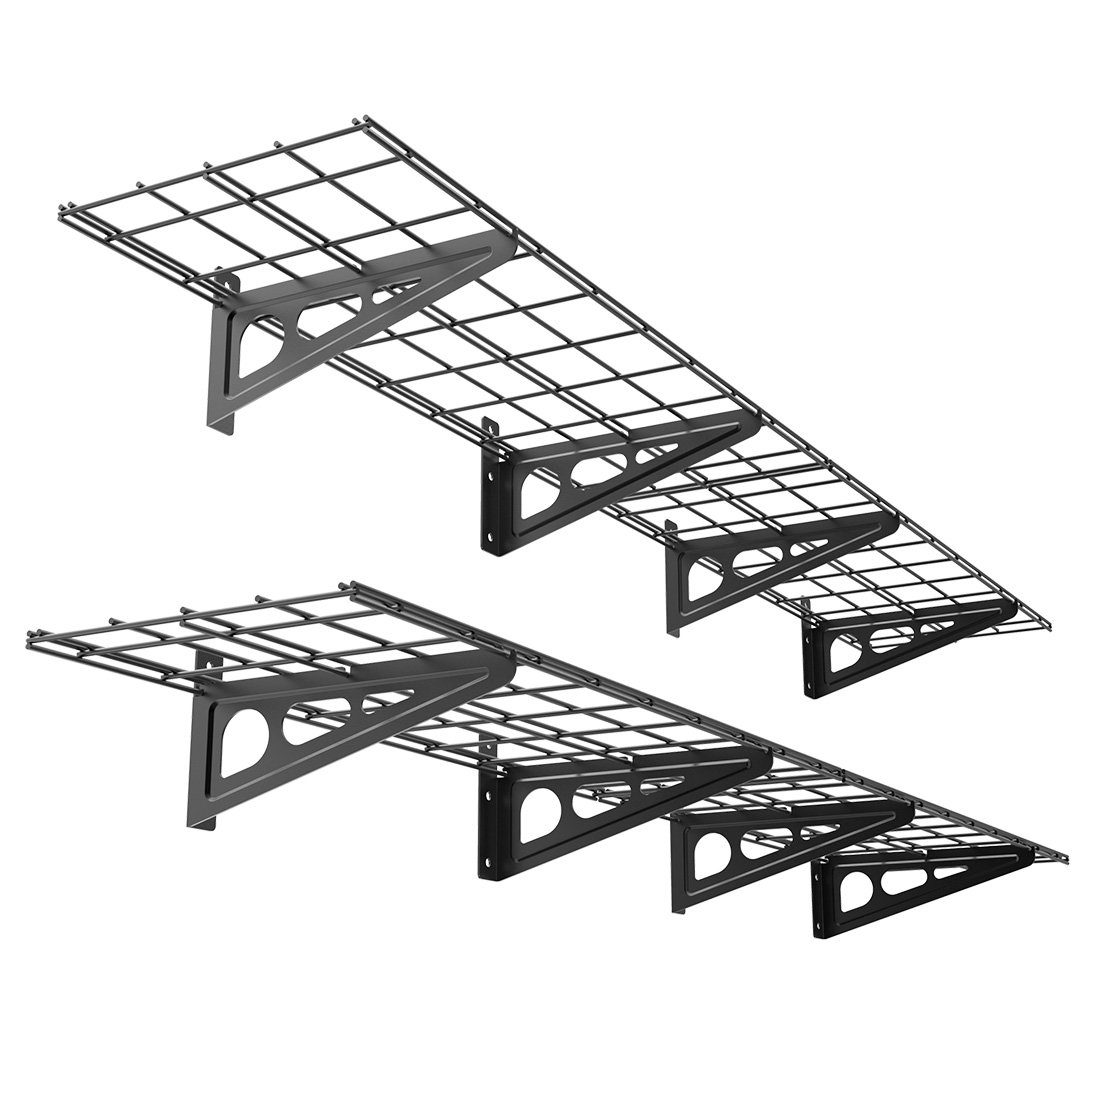 FLEXIMOUNTS 1' x 6' Black 2-Pack 1x6ft 12-inch-by-72-inch Wall Shelf Garage Storage Rack, 1x6 ft, by FLEXIMOUNTS